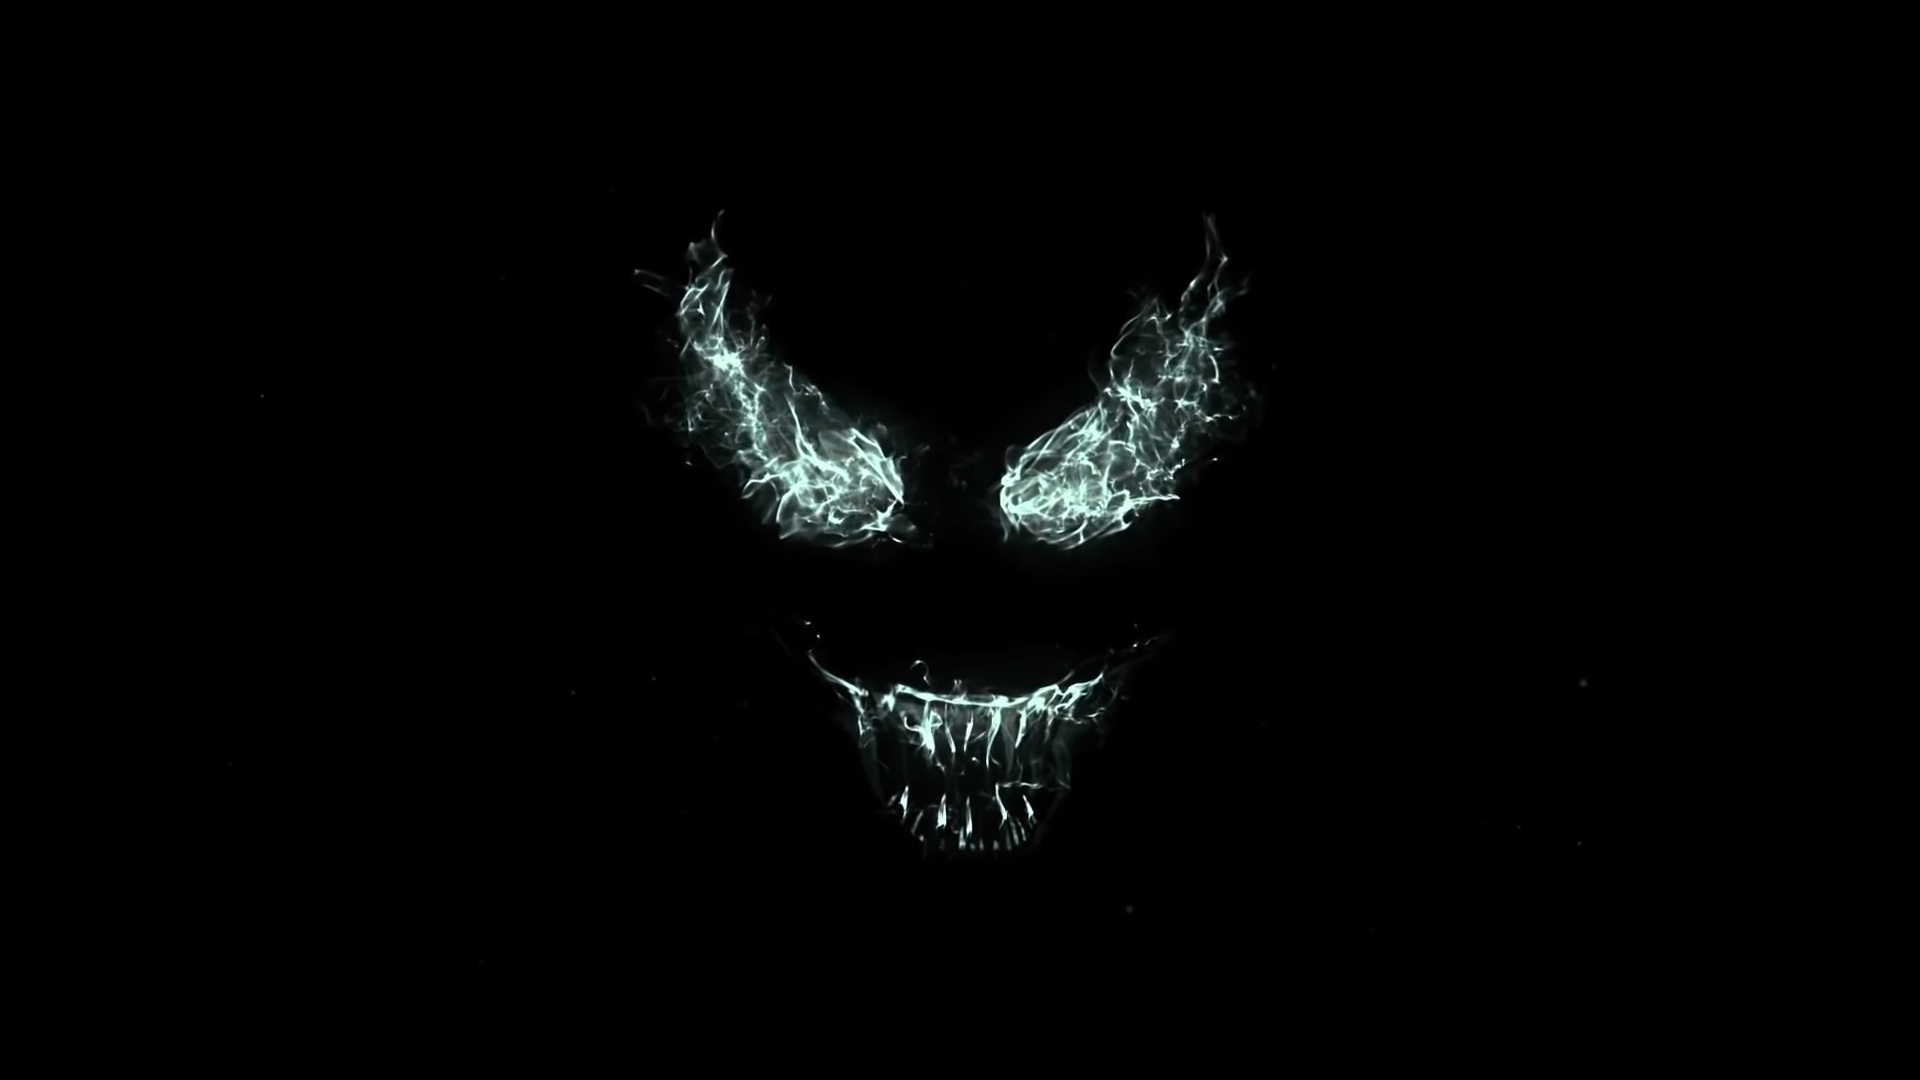 Venom movie wallpaper 4k hd iphone android pc download - Venom hd wallpaper android ...